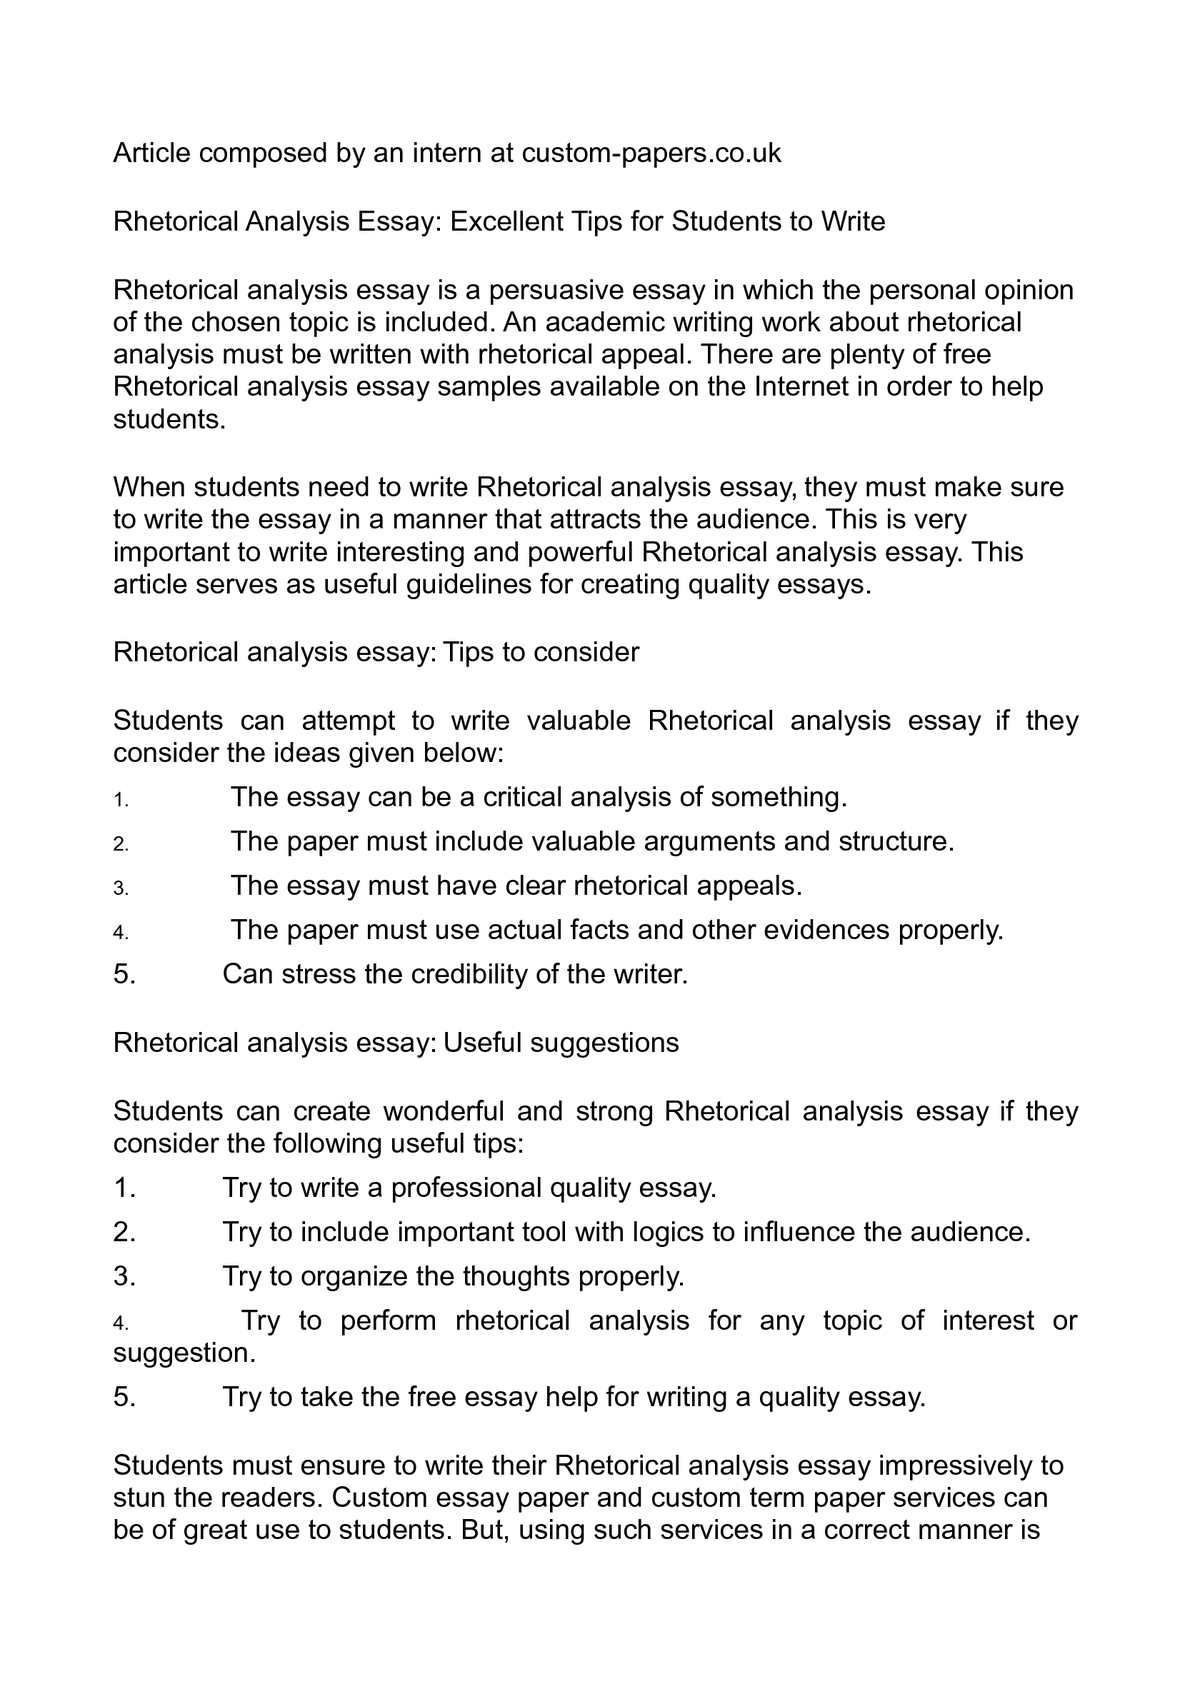 analyze essay structure toulmin model of argument essay outline critical review sample toulmin model of argument essay outline critical review sample